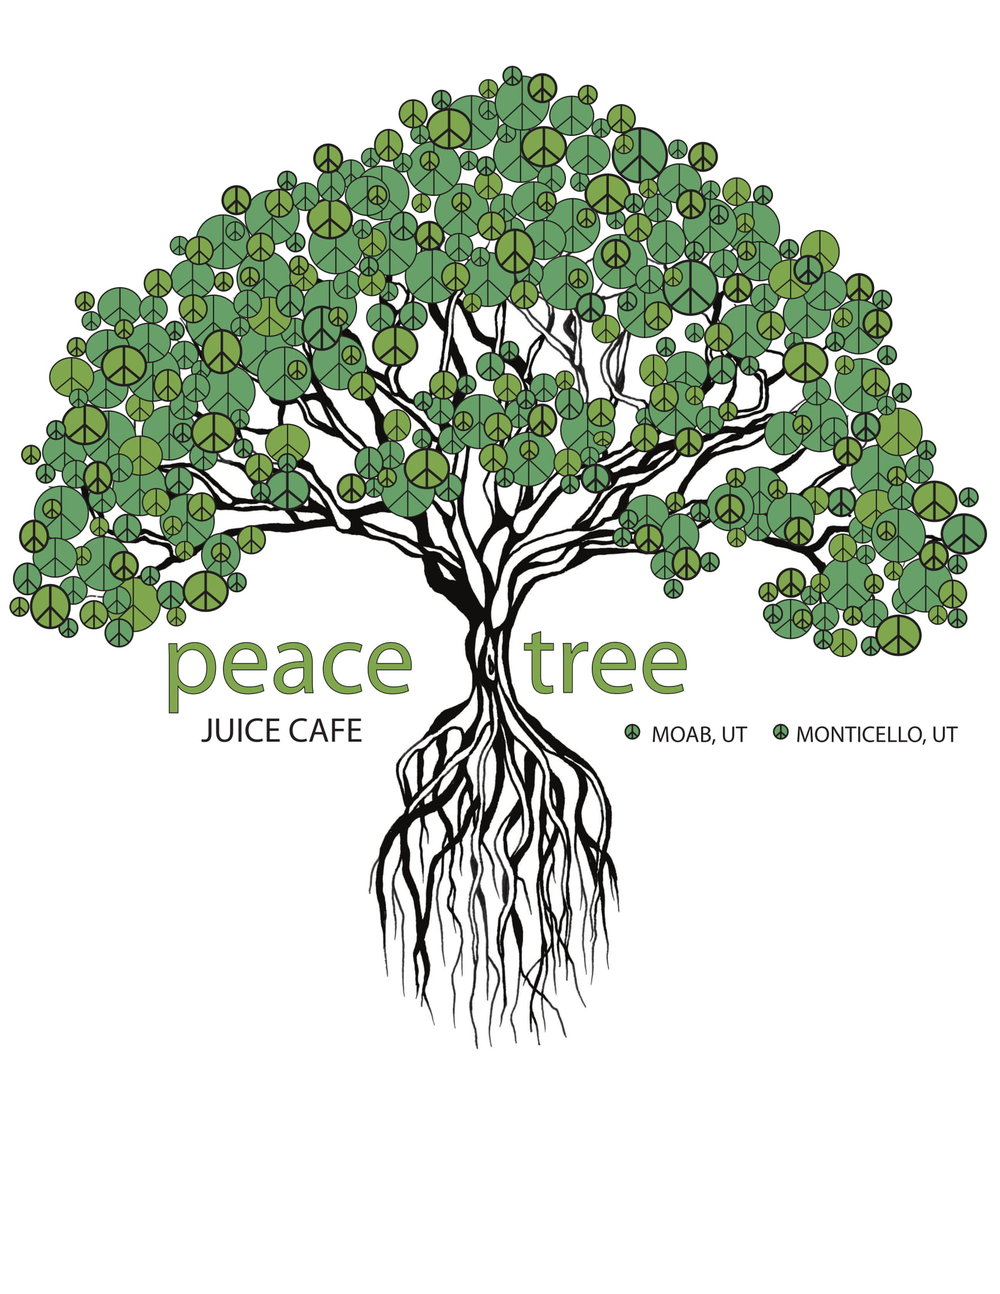 FINAL_PEACE_TREE_LOGO-1.jpg